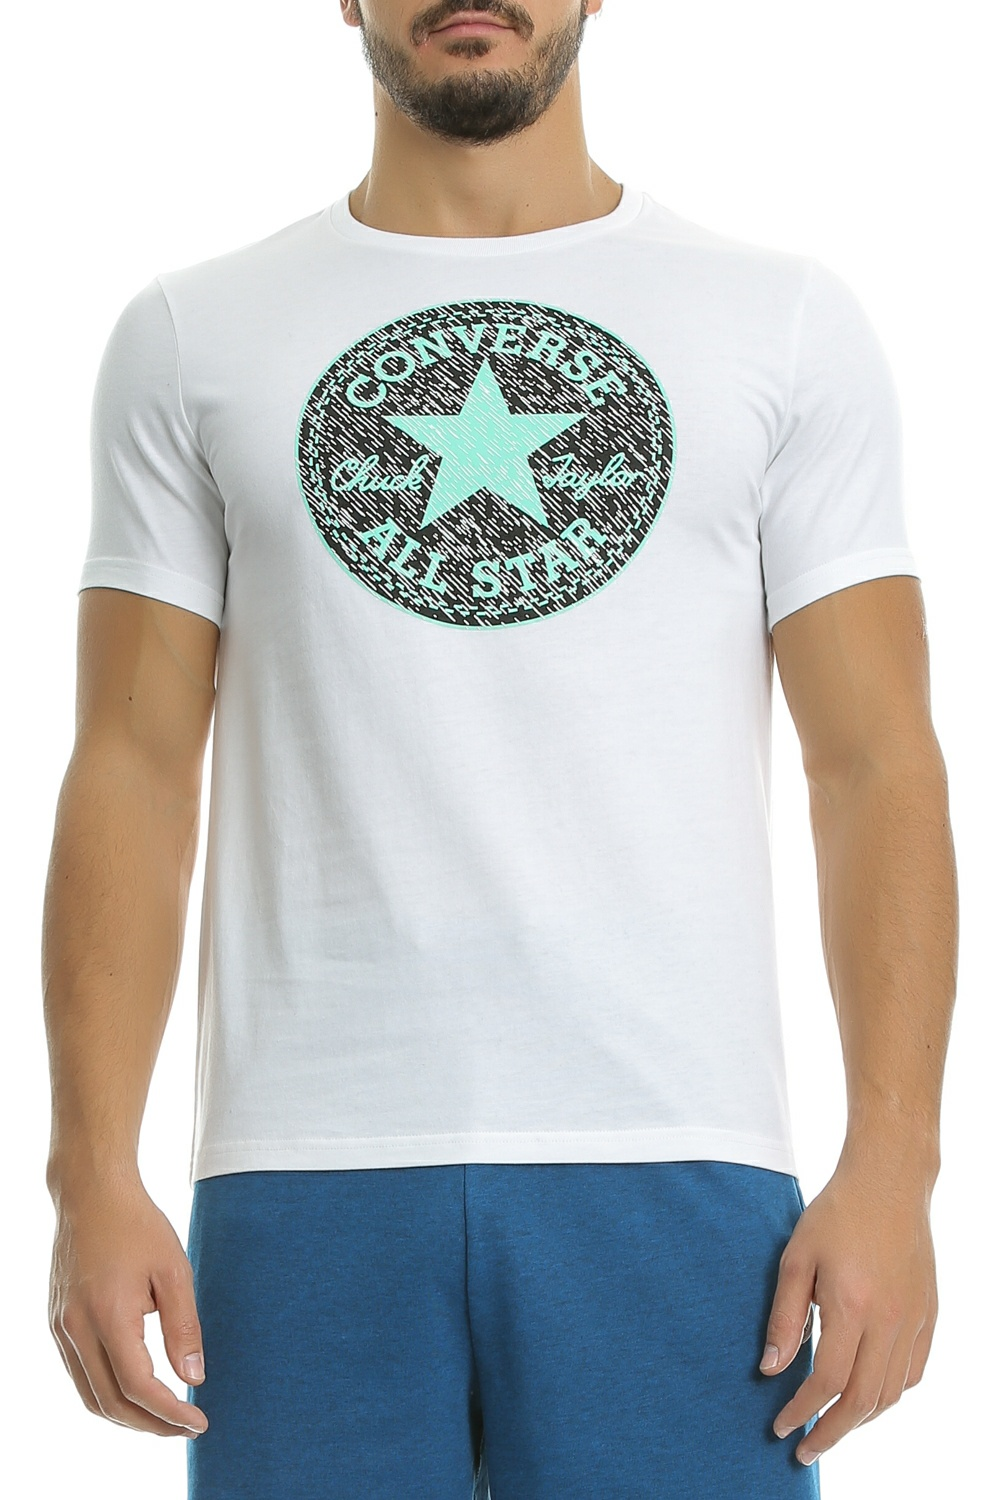 CONVERSE - Ανδρική Μπλούζα CP Knit Texture Fill Tee Λευκή